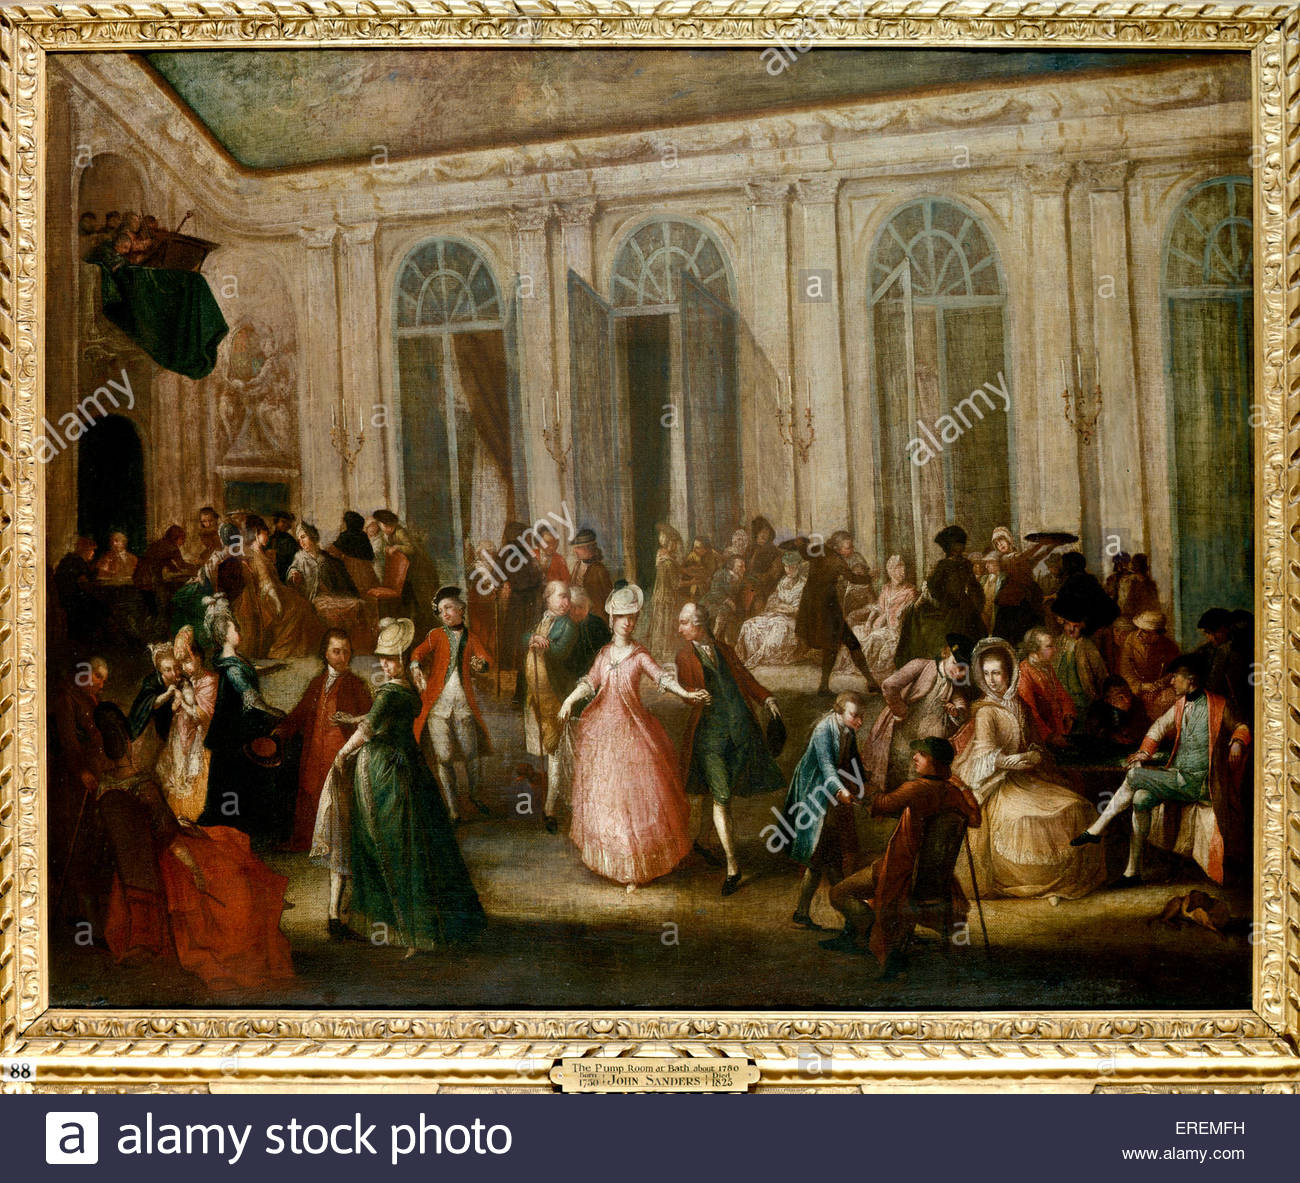 The Pump Room at Bath about 1780 by John Sanders (1750- 1825). - Stock Image